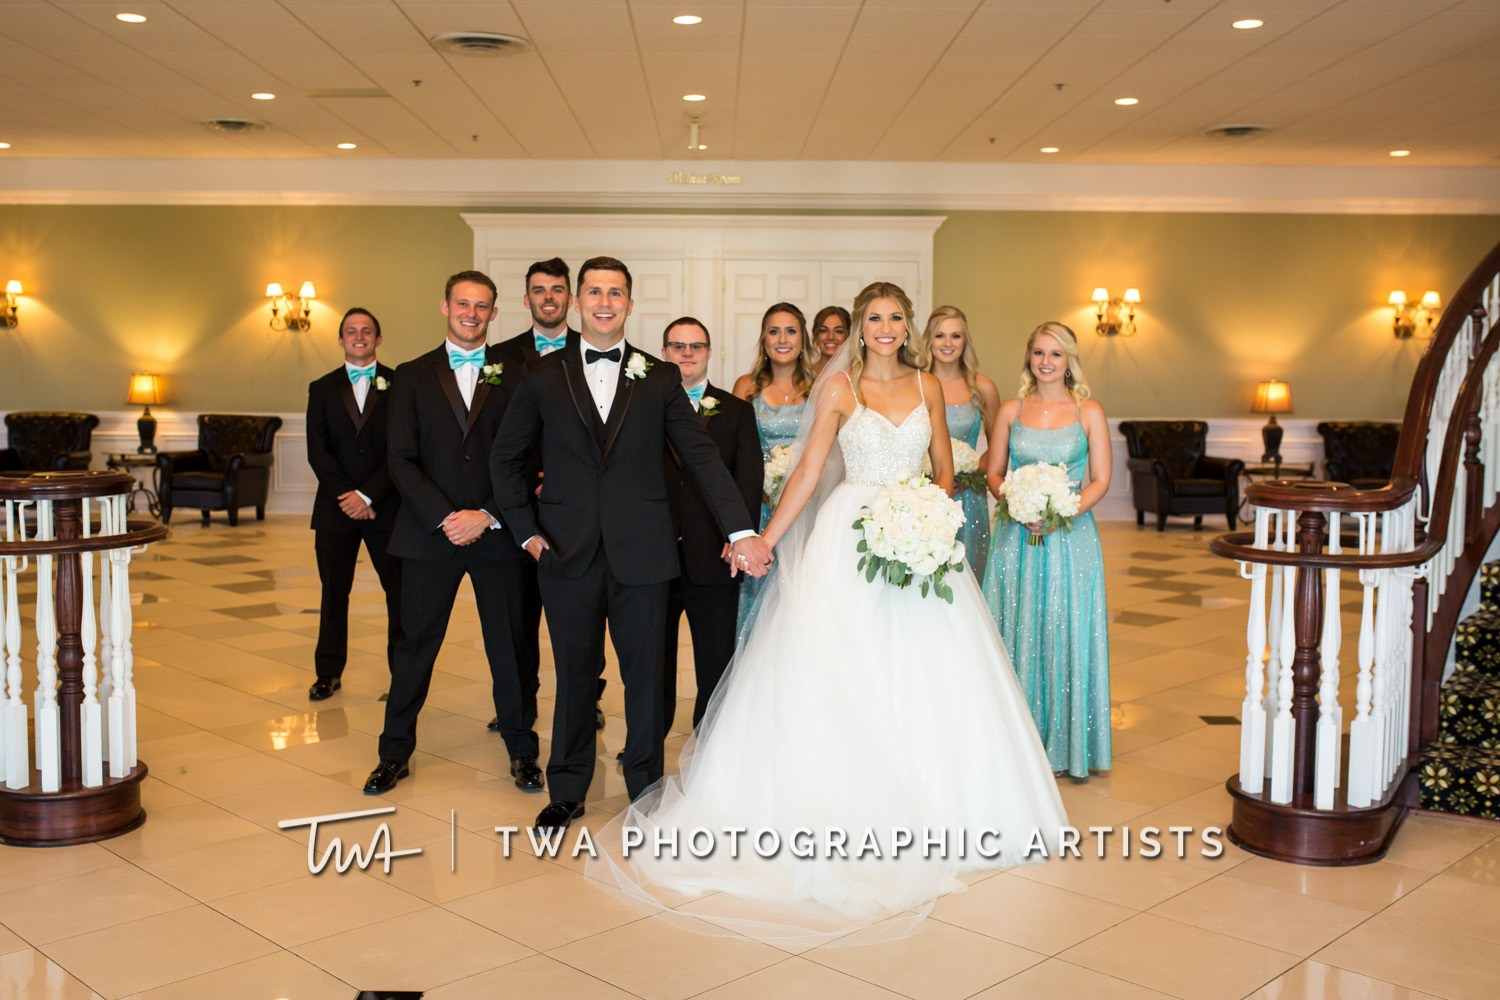 Chicago-Wedding-Photographer-TWA-Photographic-Artists-DiNolfo_s-Banquets_Augustine_Evans_MJ_WK-0843